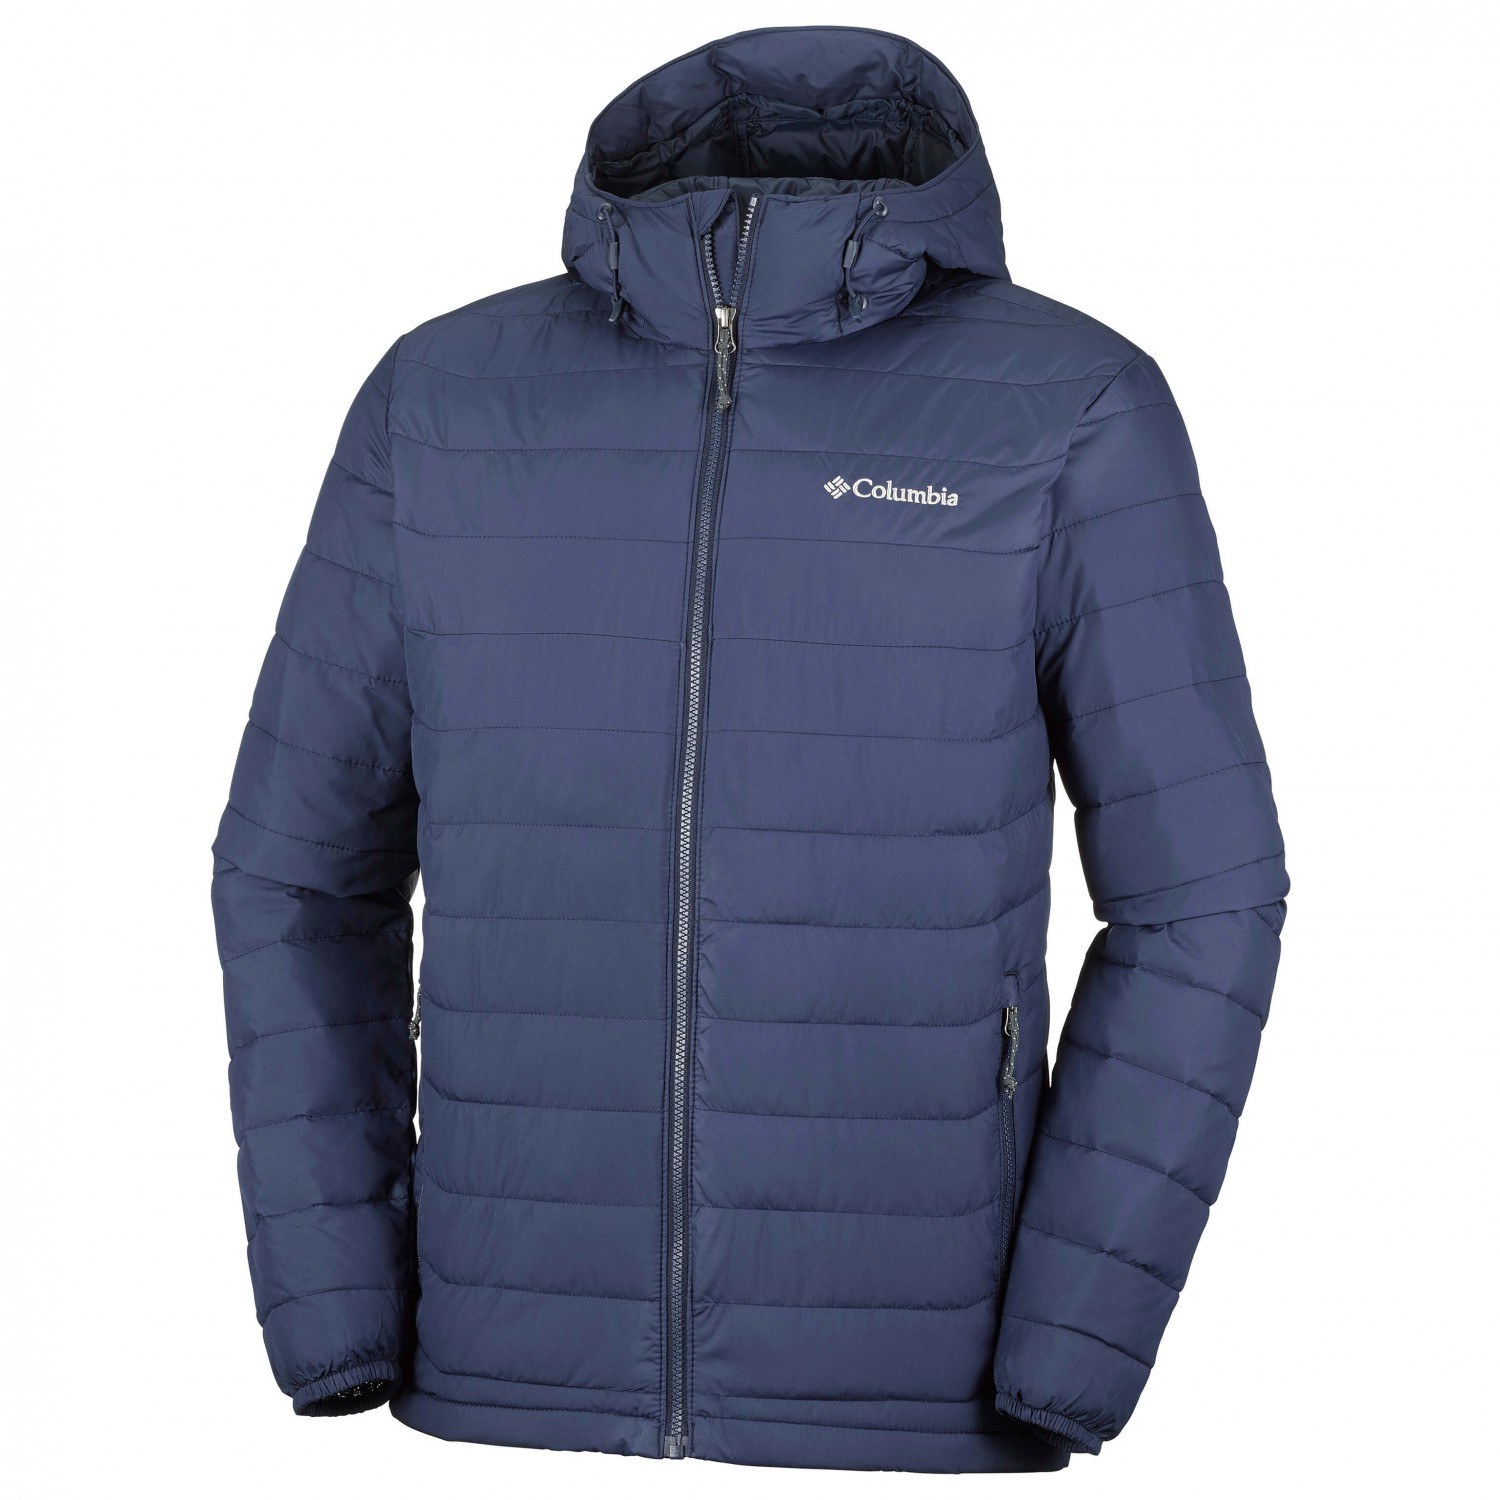 Columbia Powder Lite Hooded Jacket Synthetic Jacket Men